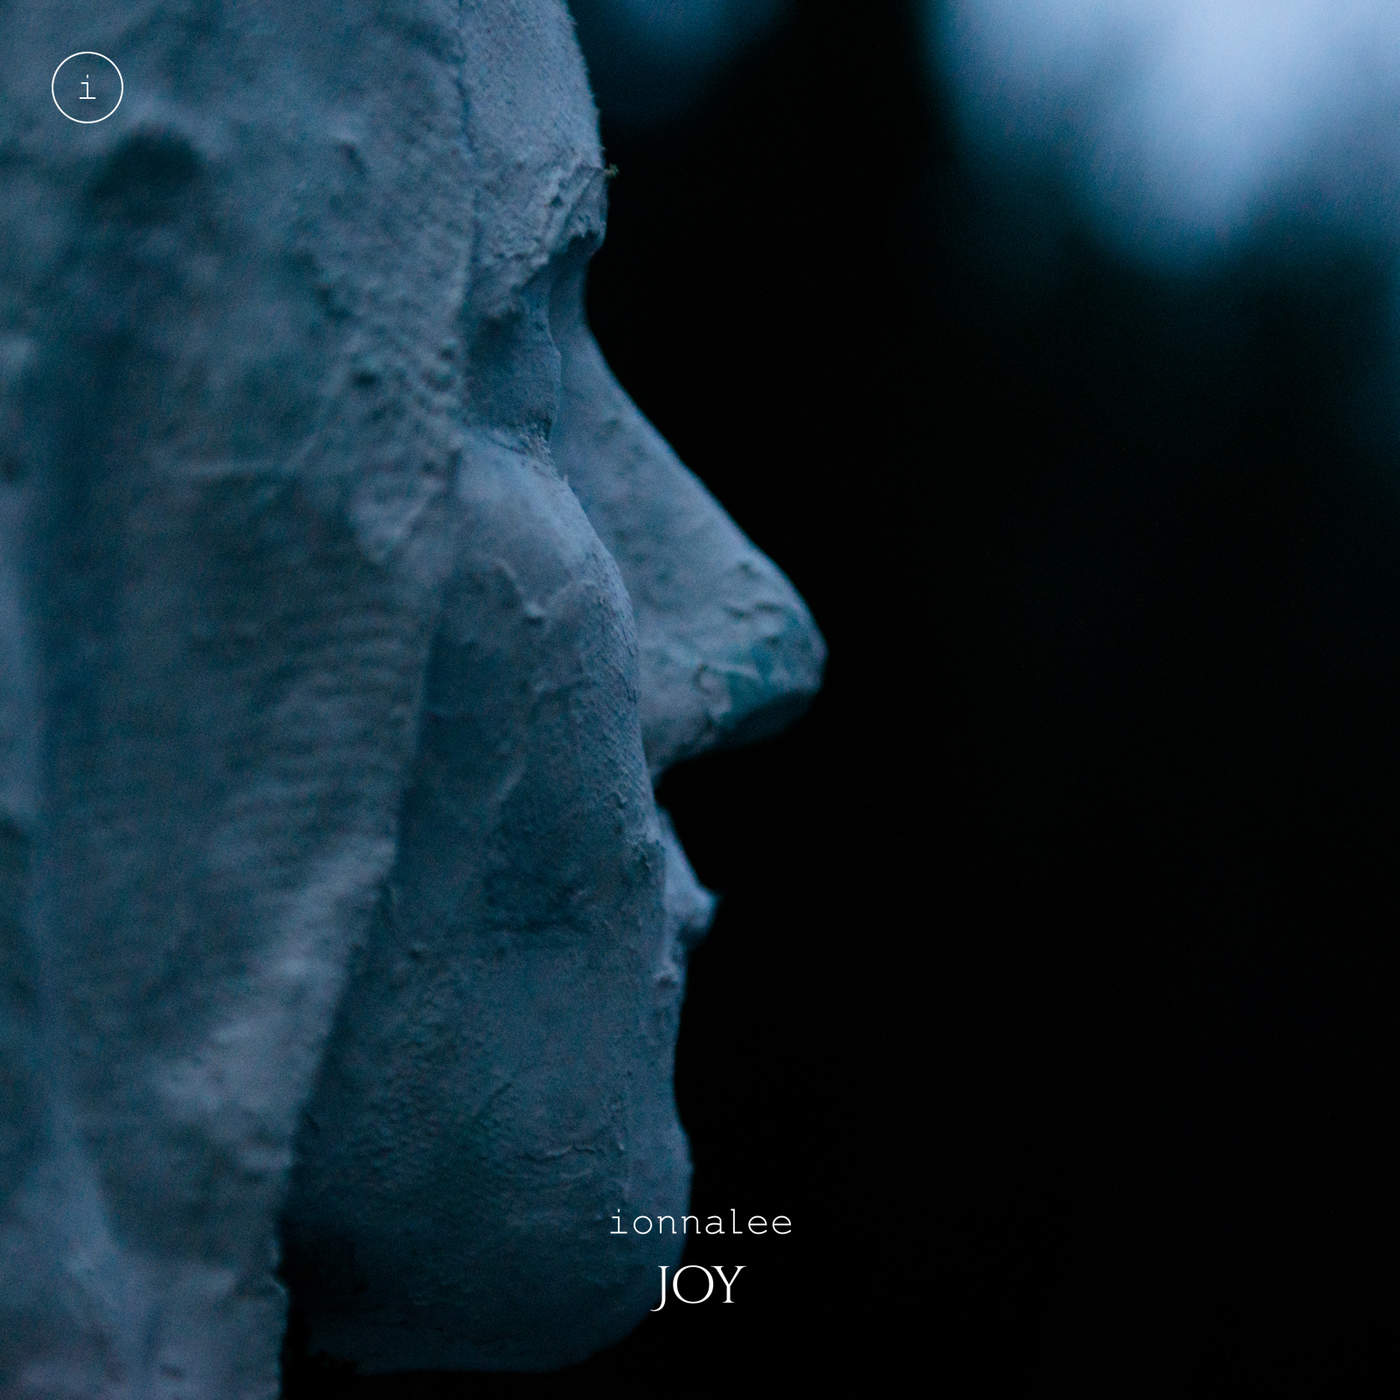 ionnalee - Joy - Single Cover